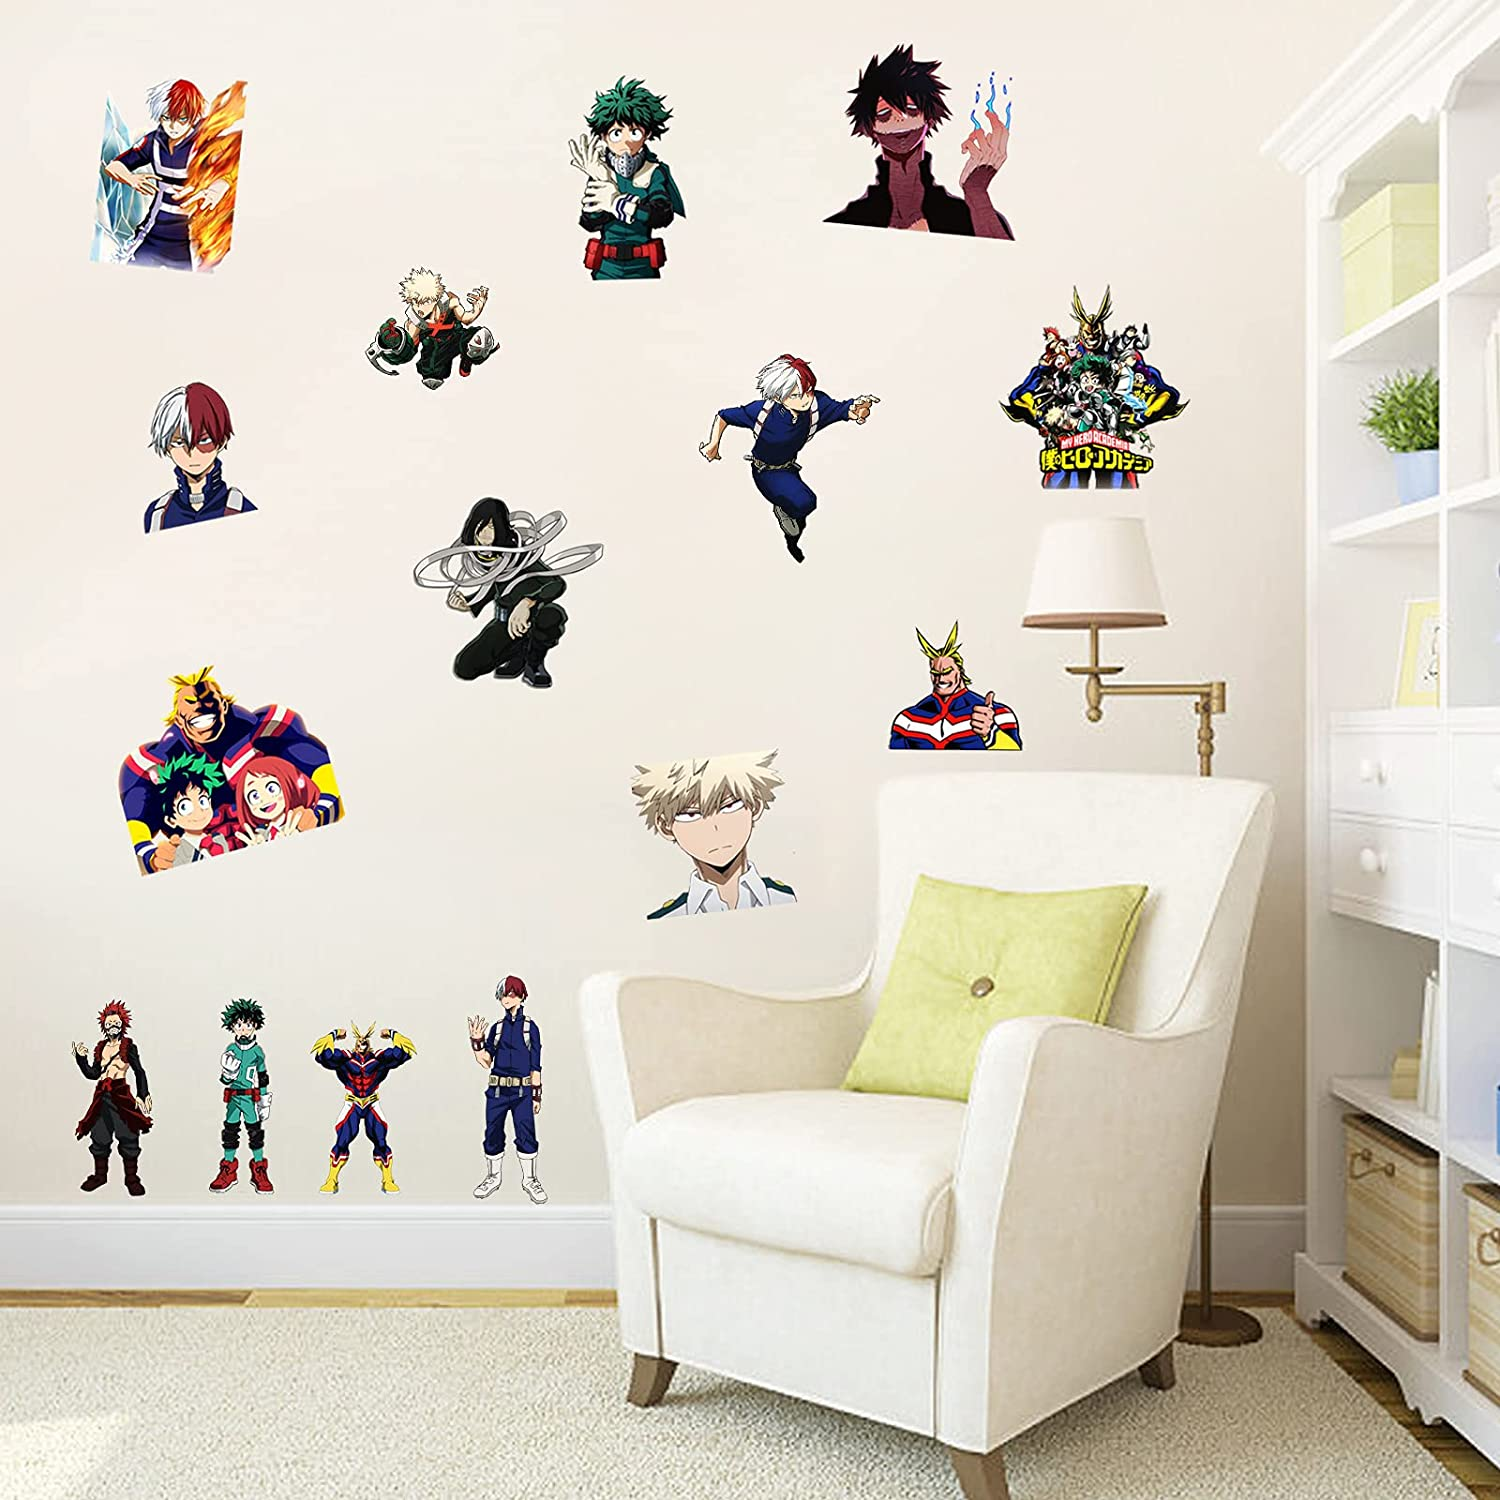 My Hero Academia Wall Decals 16x24in Anime Stickers Manga Fans Gifts for Girls and Boys Room Decor Cool Wall Graffiti for Dorm Living Room Kitchen Bedroom